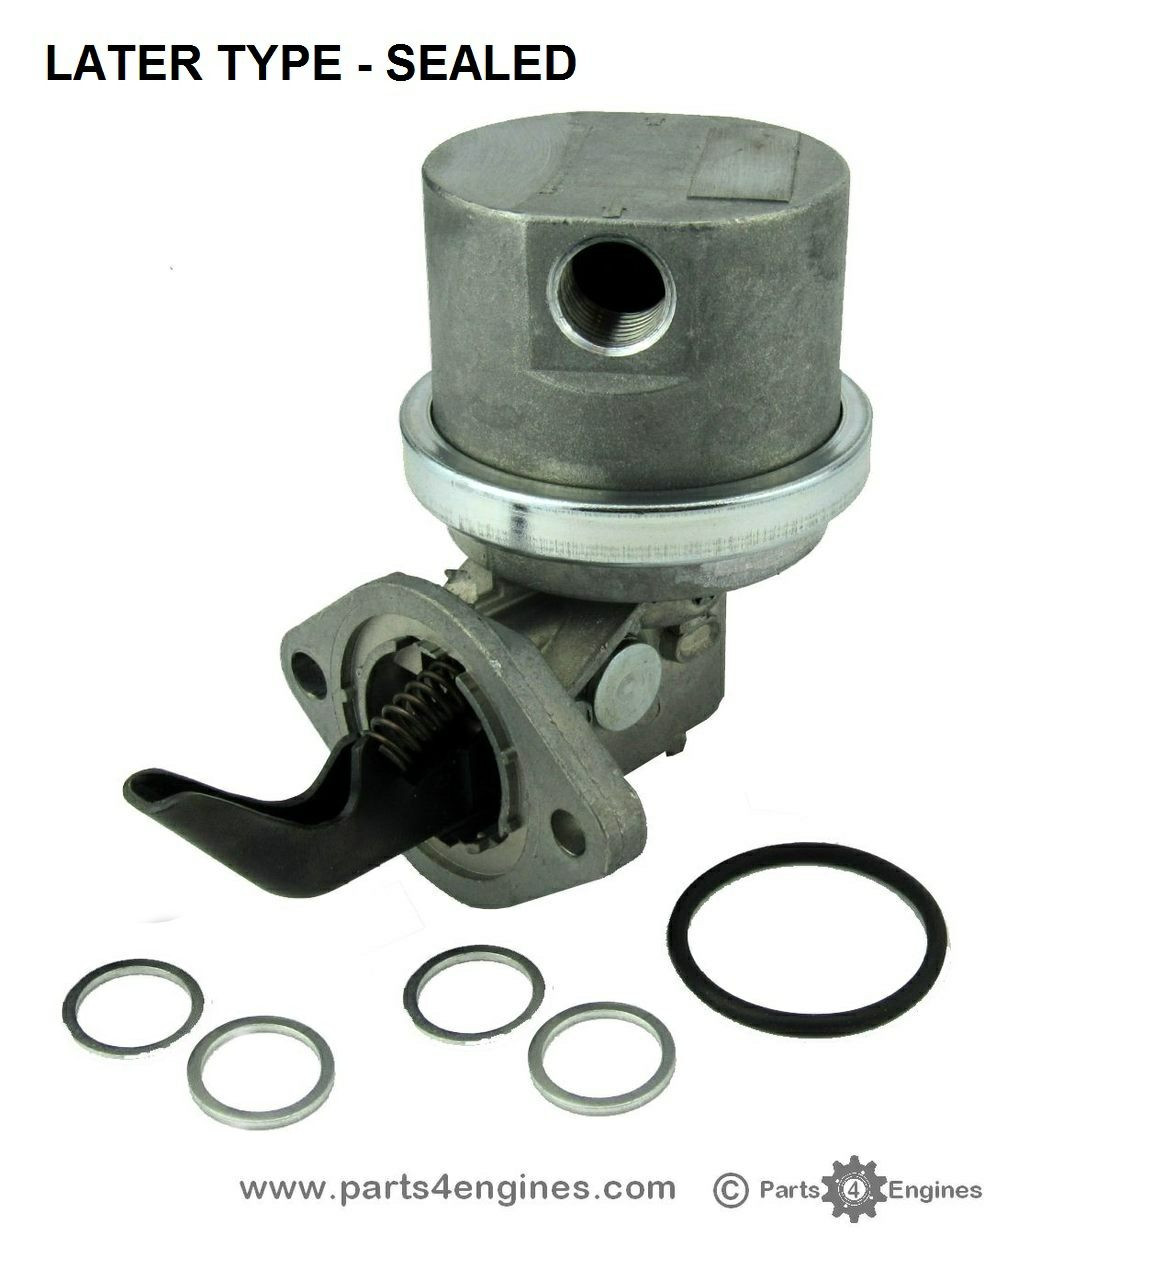 Volvo Penta 2003T fuel lift pump later - Parts4engines.com